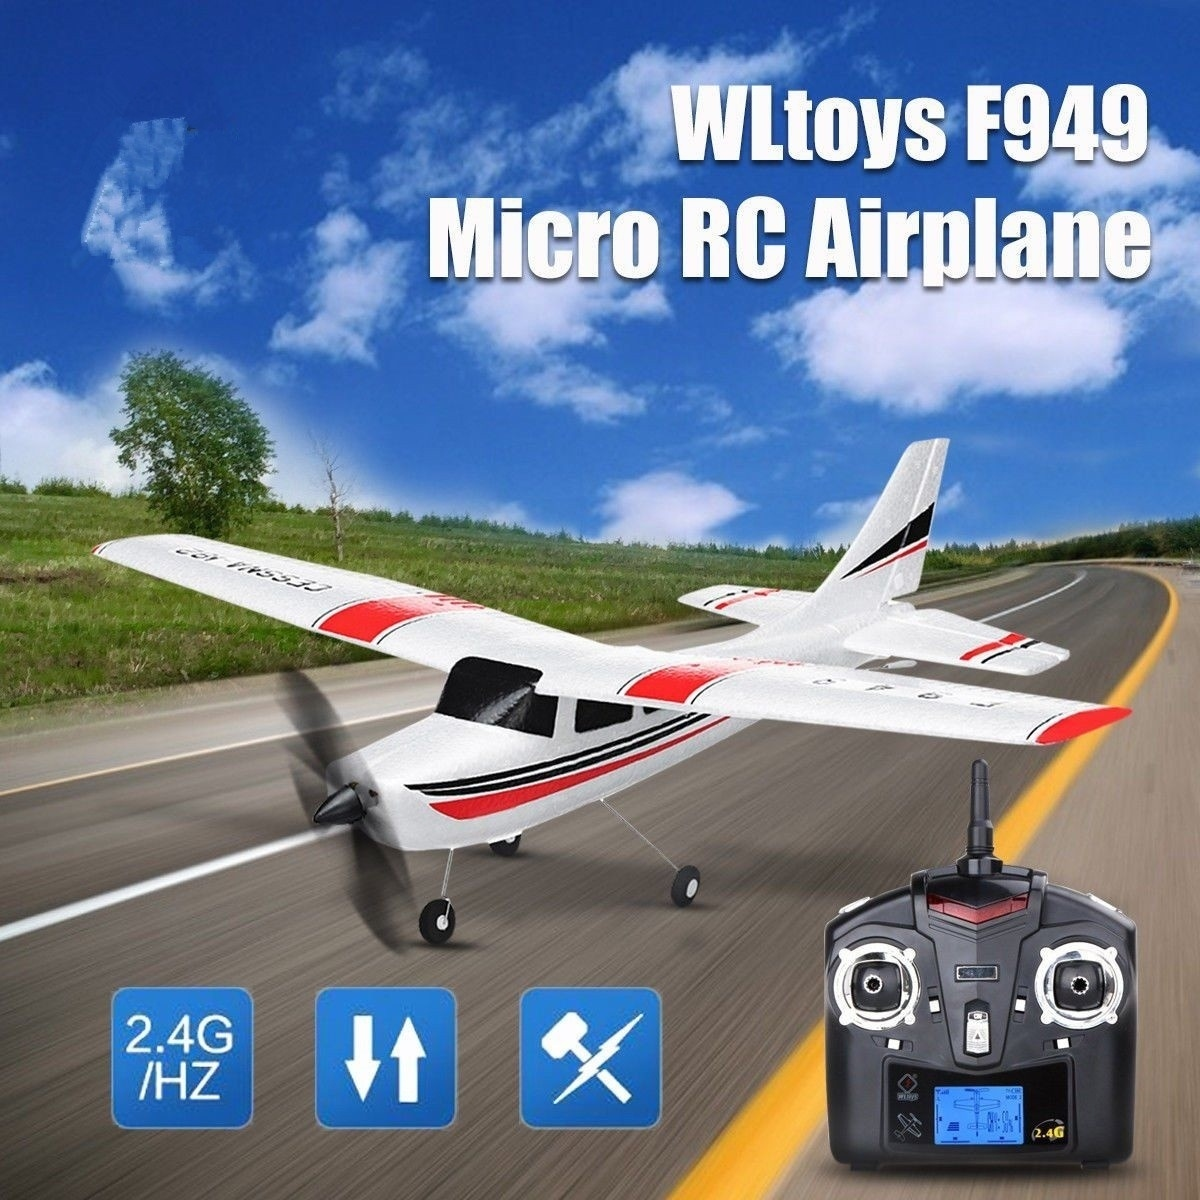 Radio Control 2.4G 3CH Fixed Wing Plane Outdoor Long Distance Rubber Plane Remote Control RC Airplane Toy image